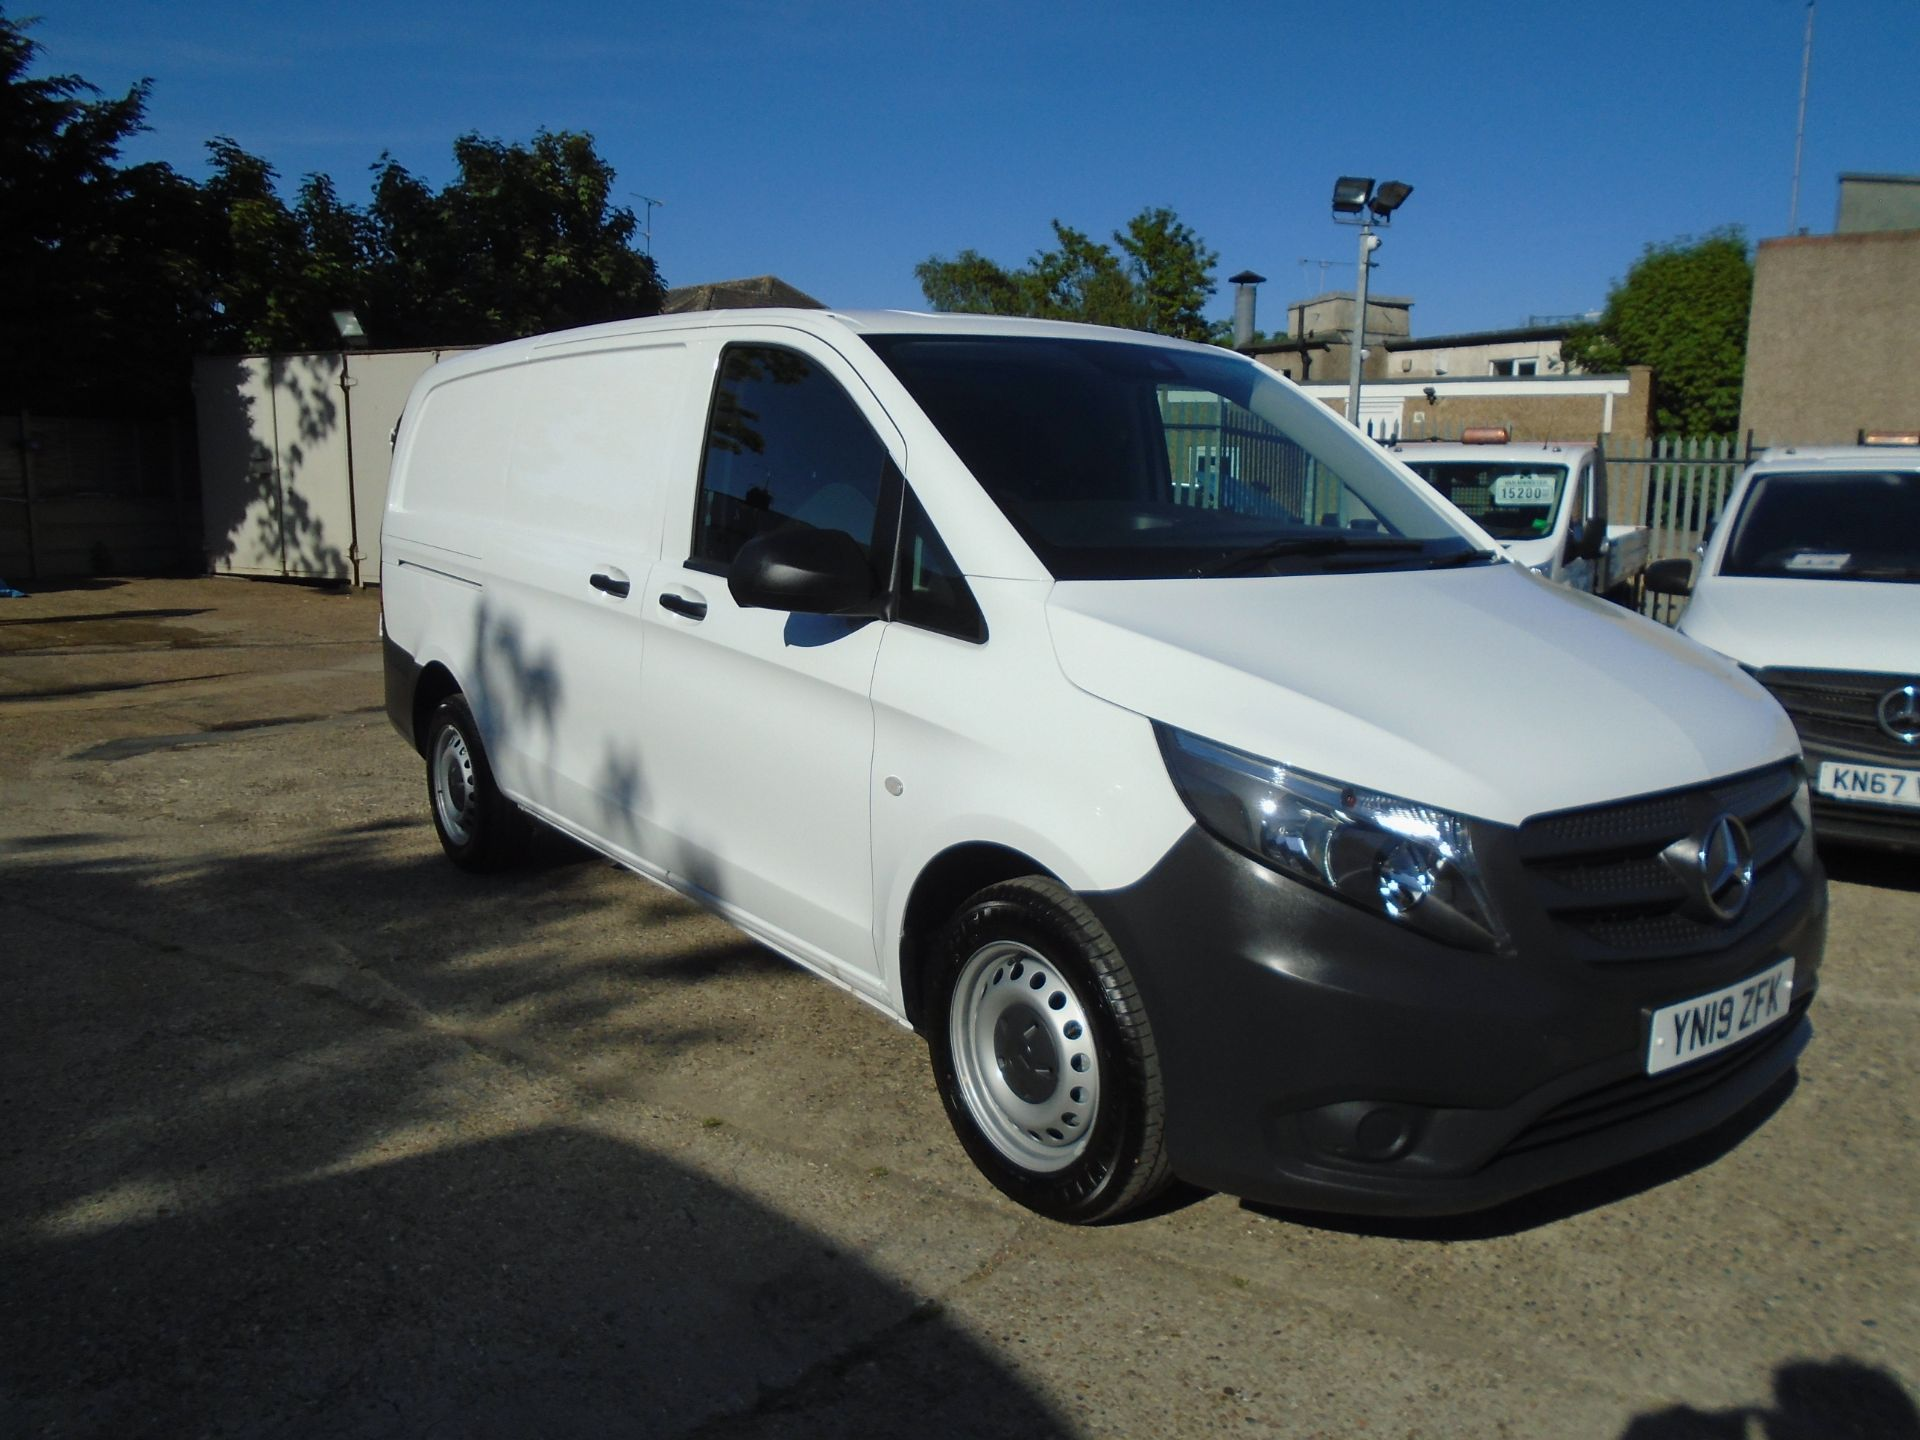 2019 Mercedes-Benz Vito 111Cdi Van Euro 6 Massive specification A/C Air Con, Delivery Miles Only